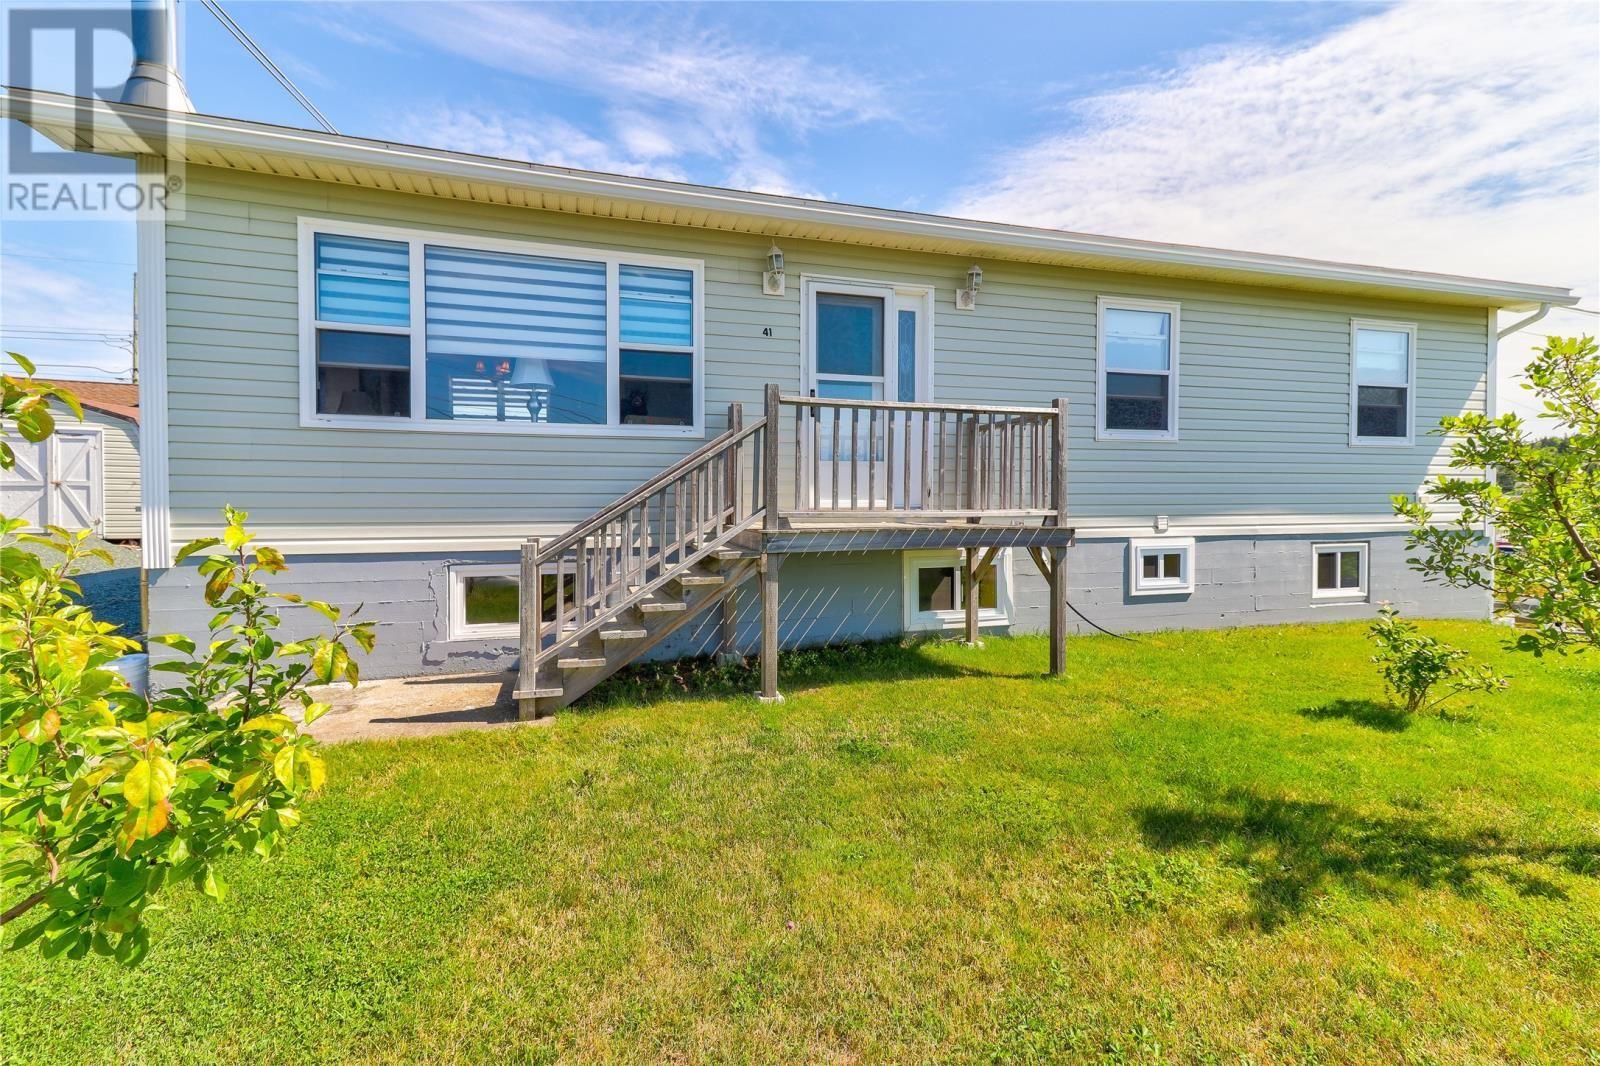 Main Photo: 41 Dunns Hill Road in Conception Bay South: House for sale : MLS®# 1237497